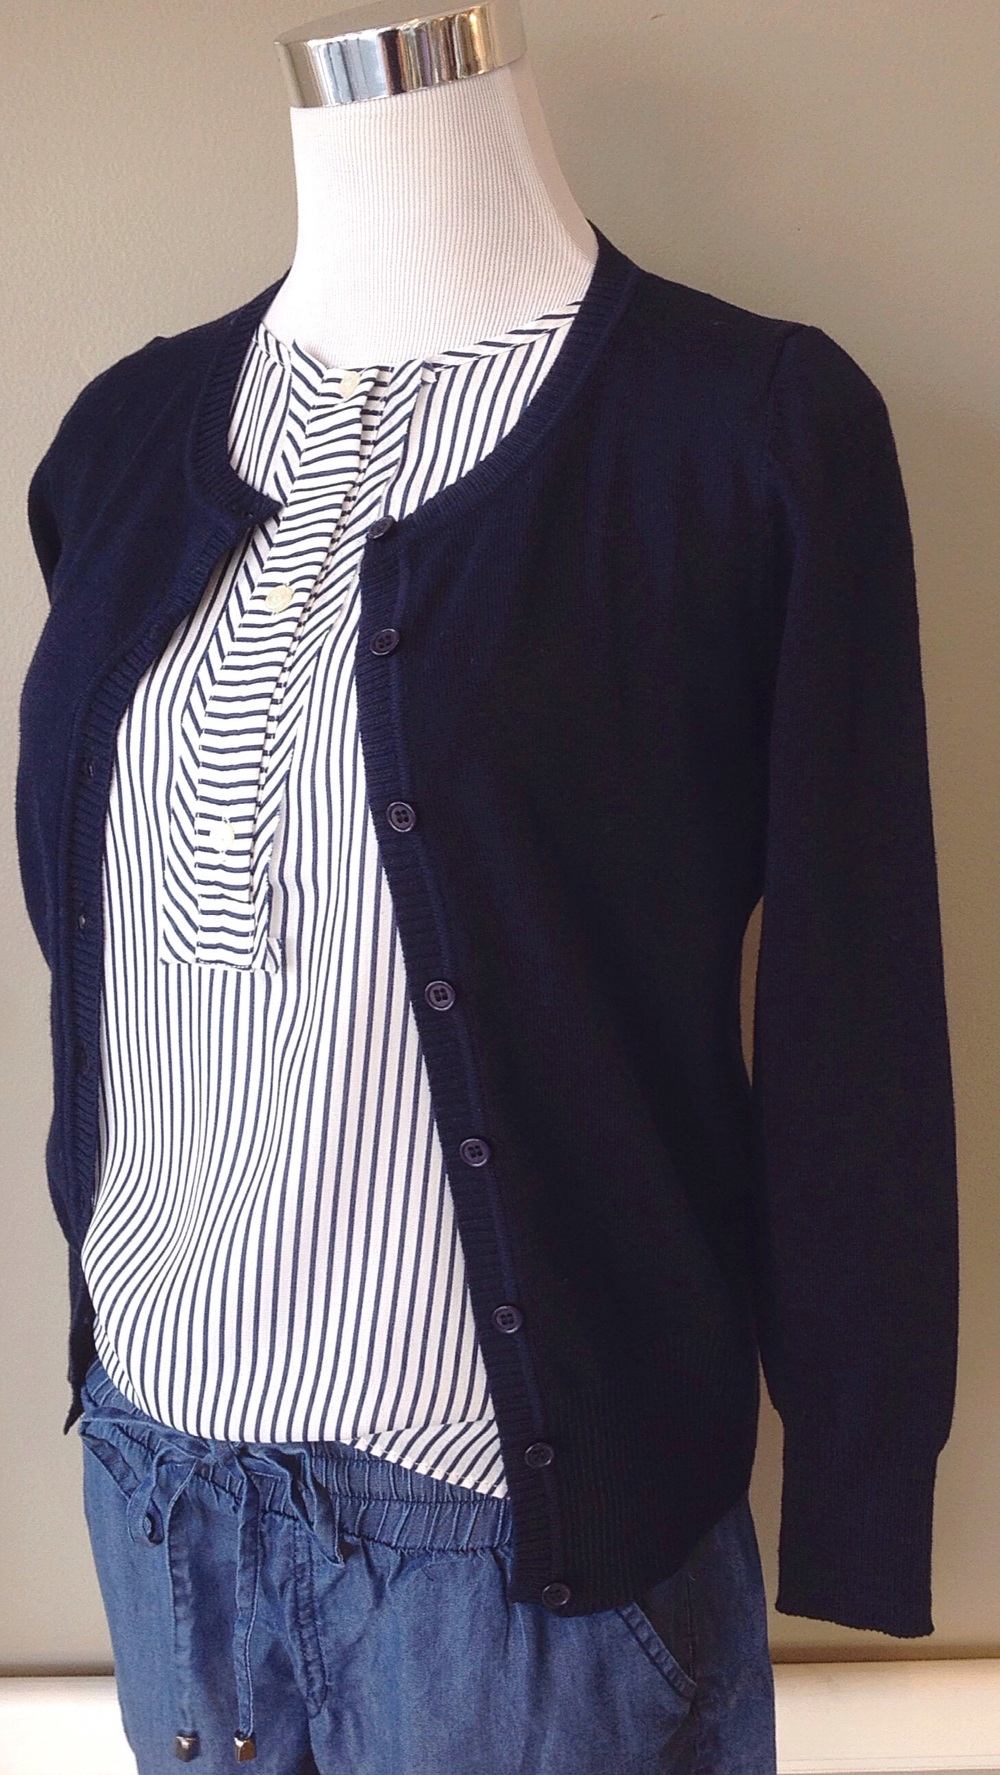 Navy button-down cardigan, $28